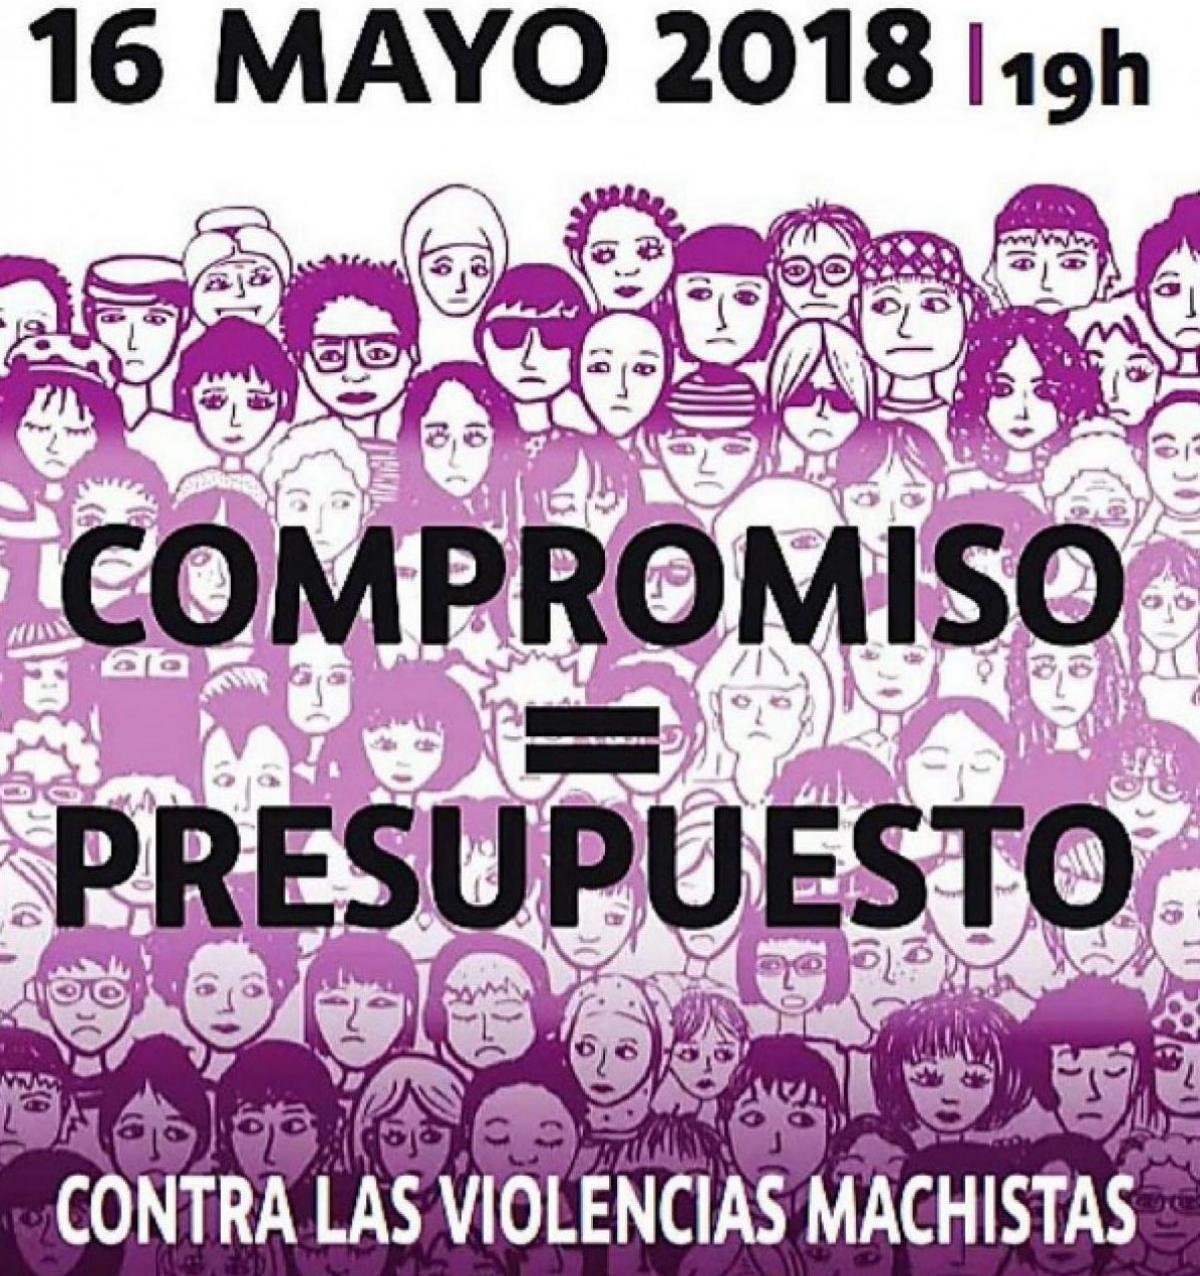 Cartel movilización feminista 16M